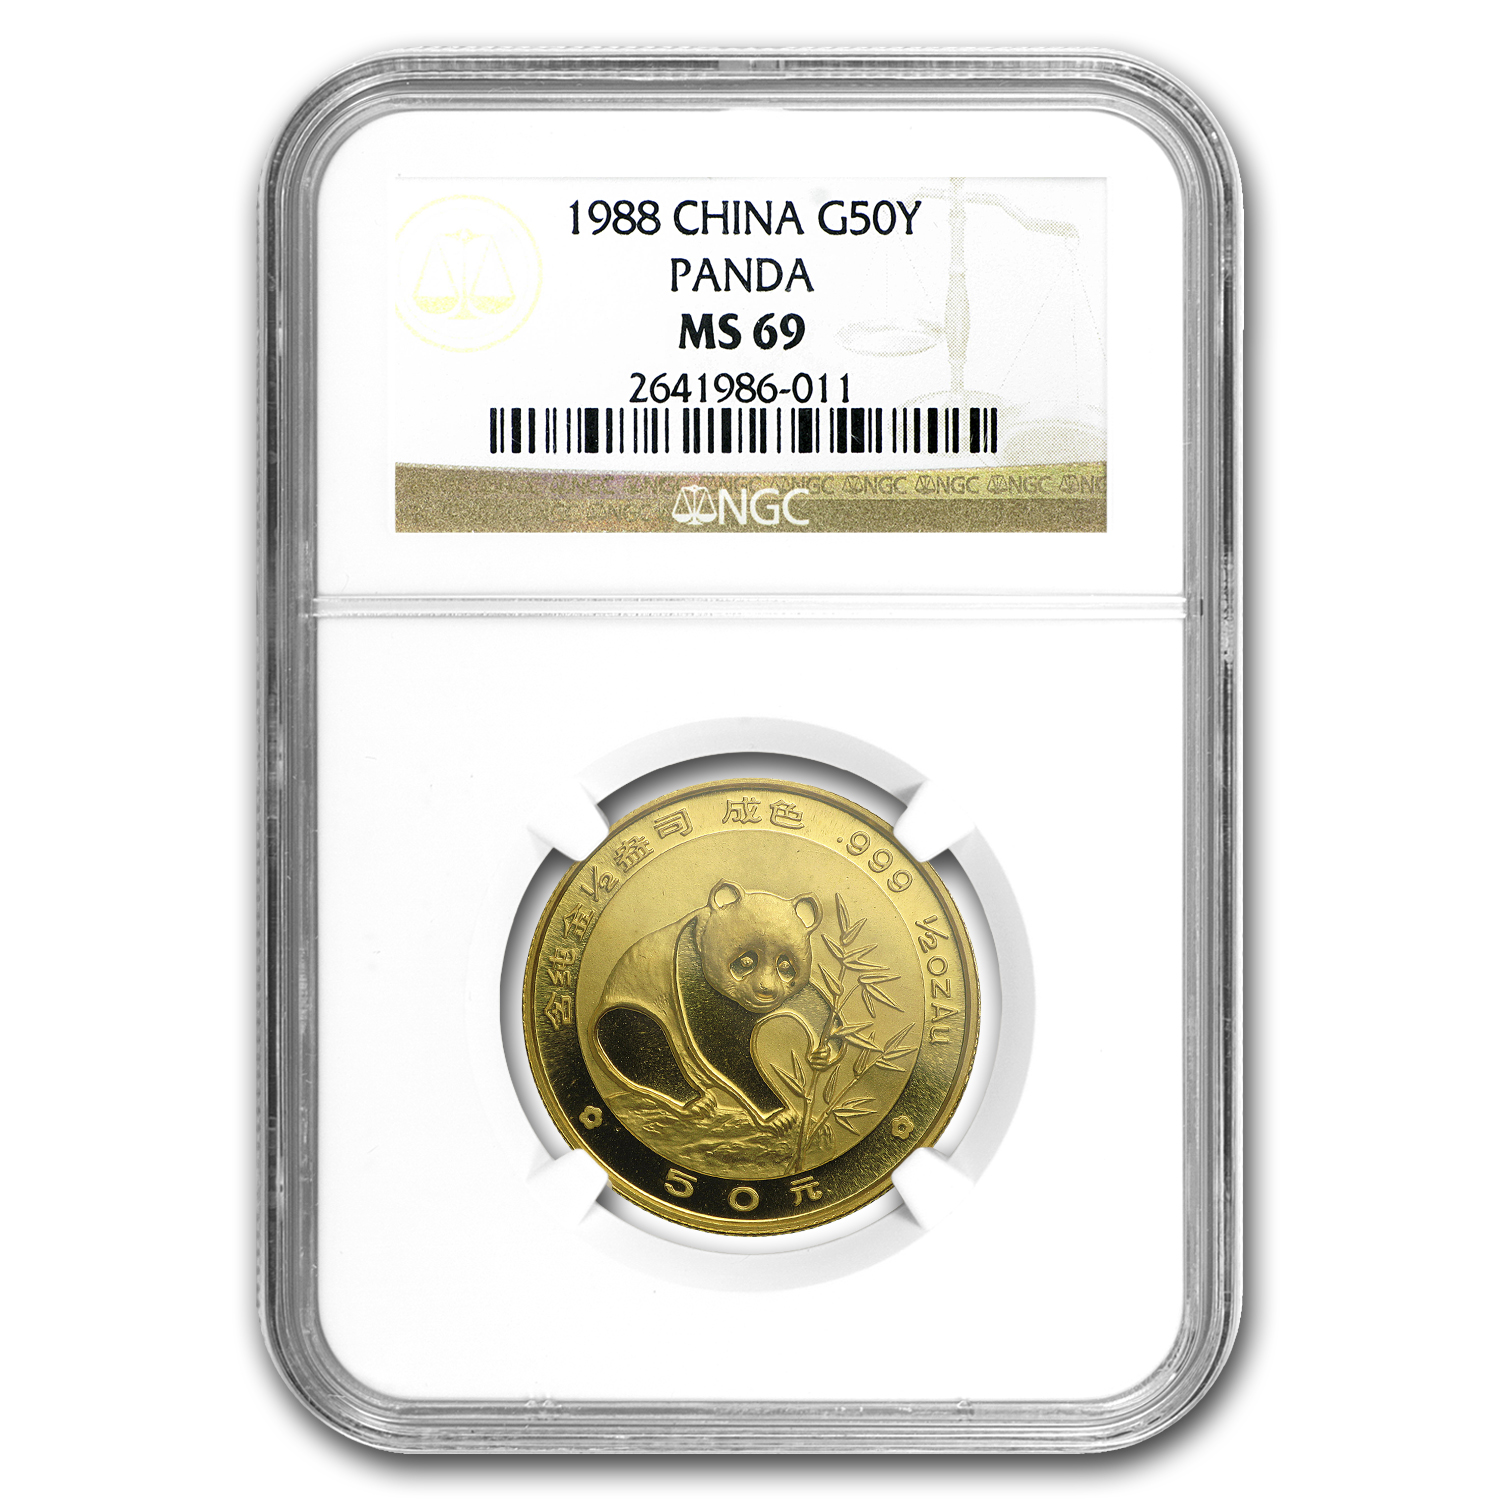 1988 (1/2 oz) Gold Chinese Pandas - MS-69 NGC